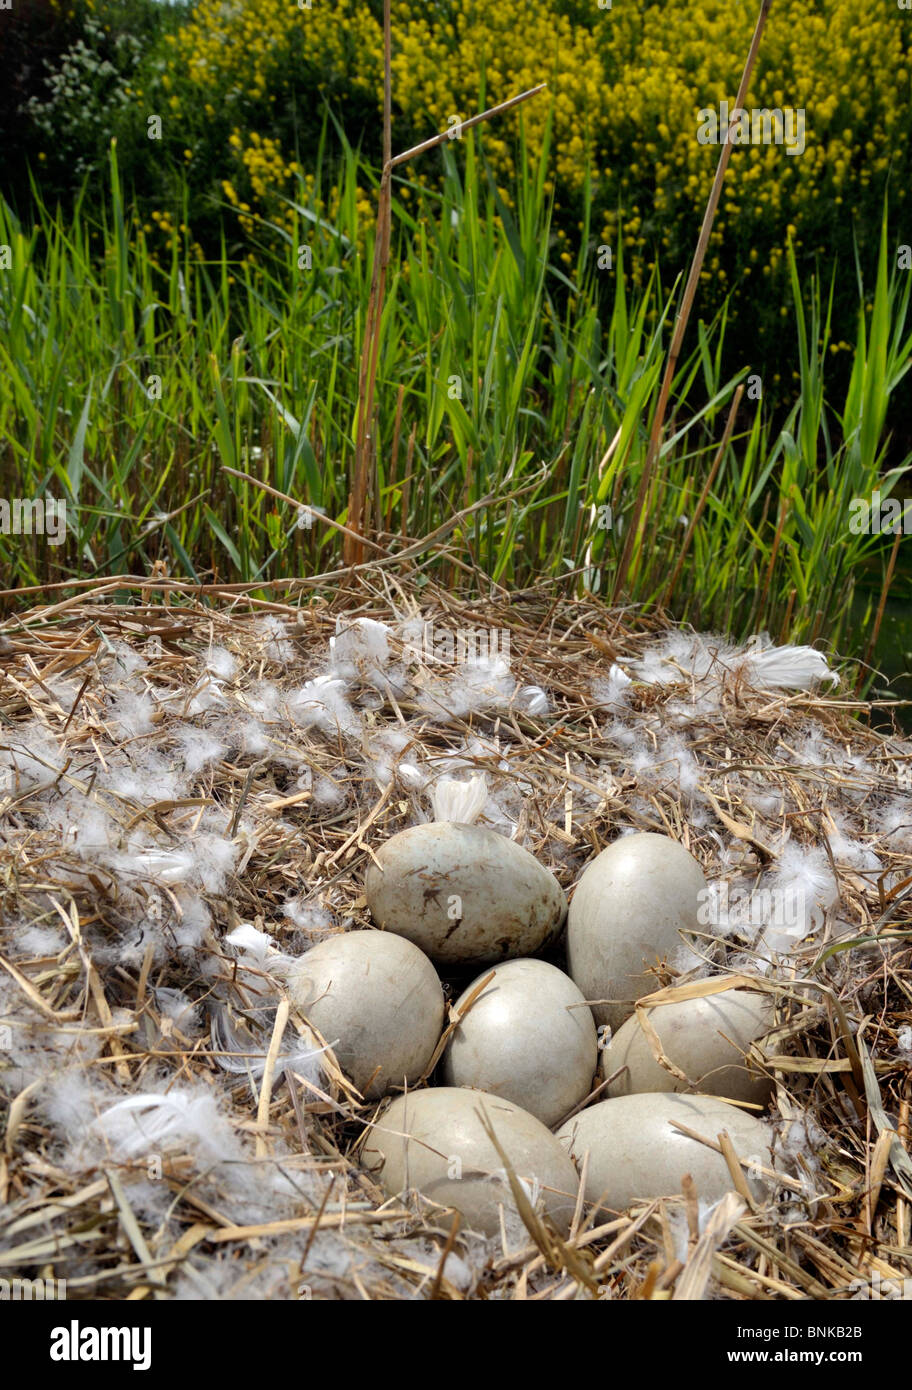 Mute Swan's nest and clutch of 7 eggs. Cygnus olor. - Stock Image